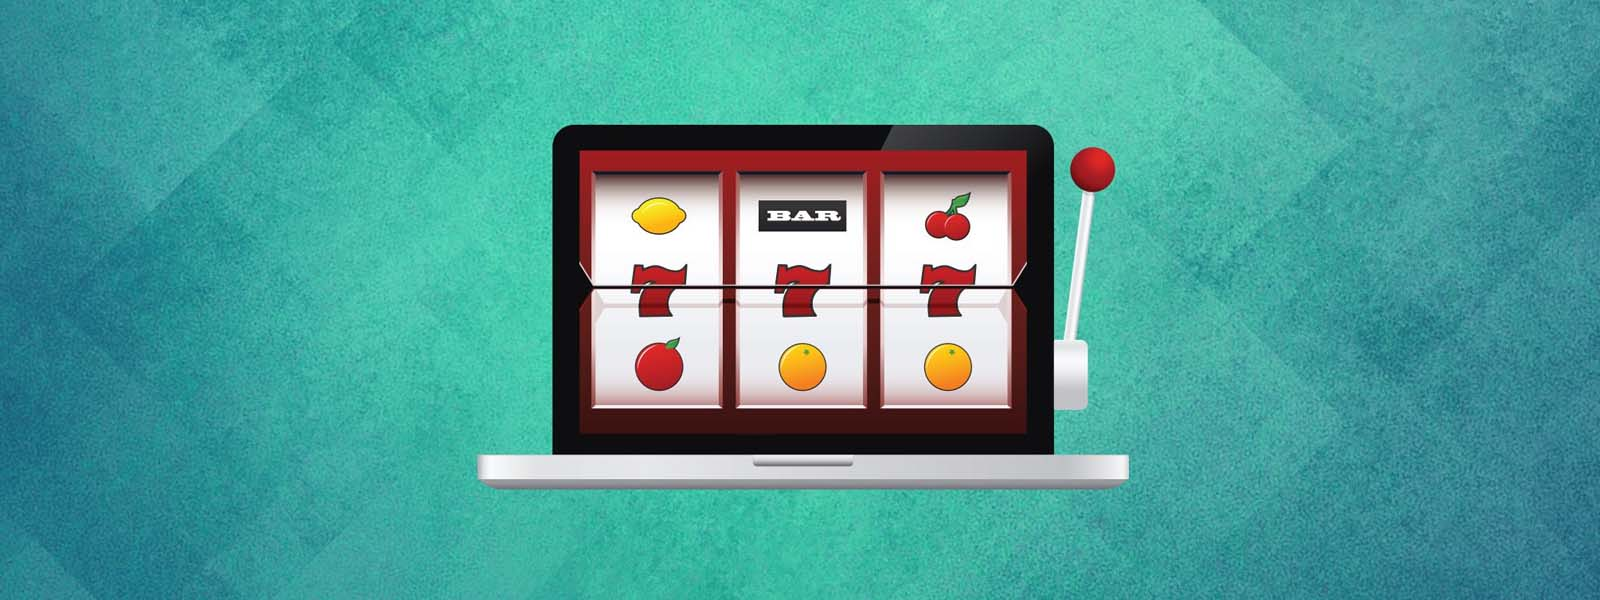 Online Gambling Sites What Do These Stats Mean